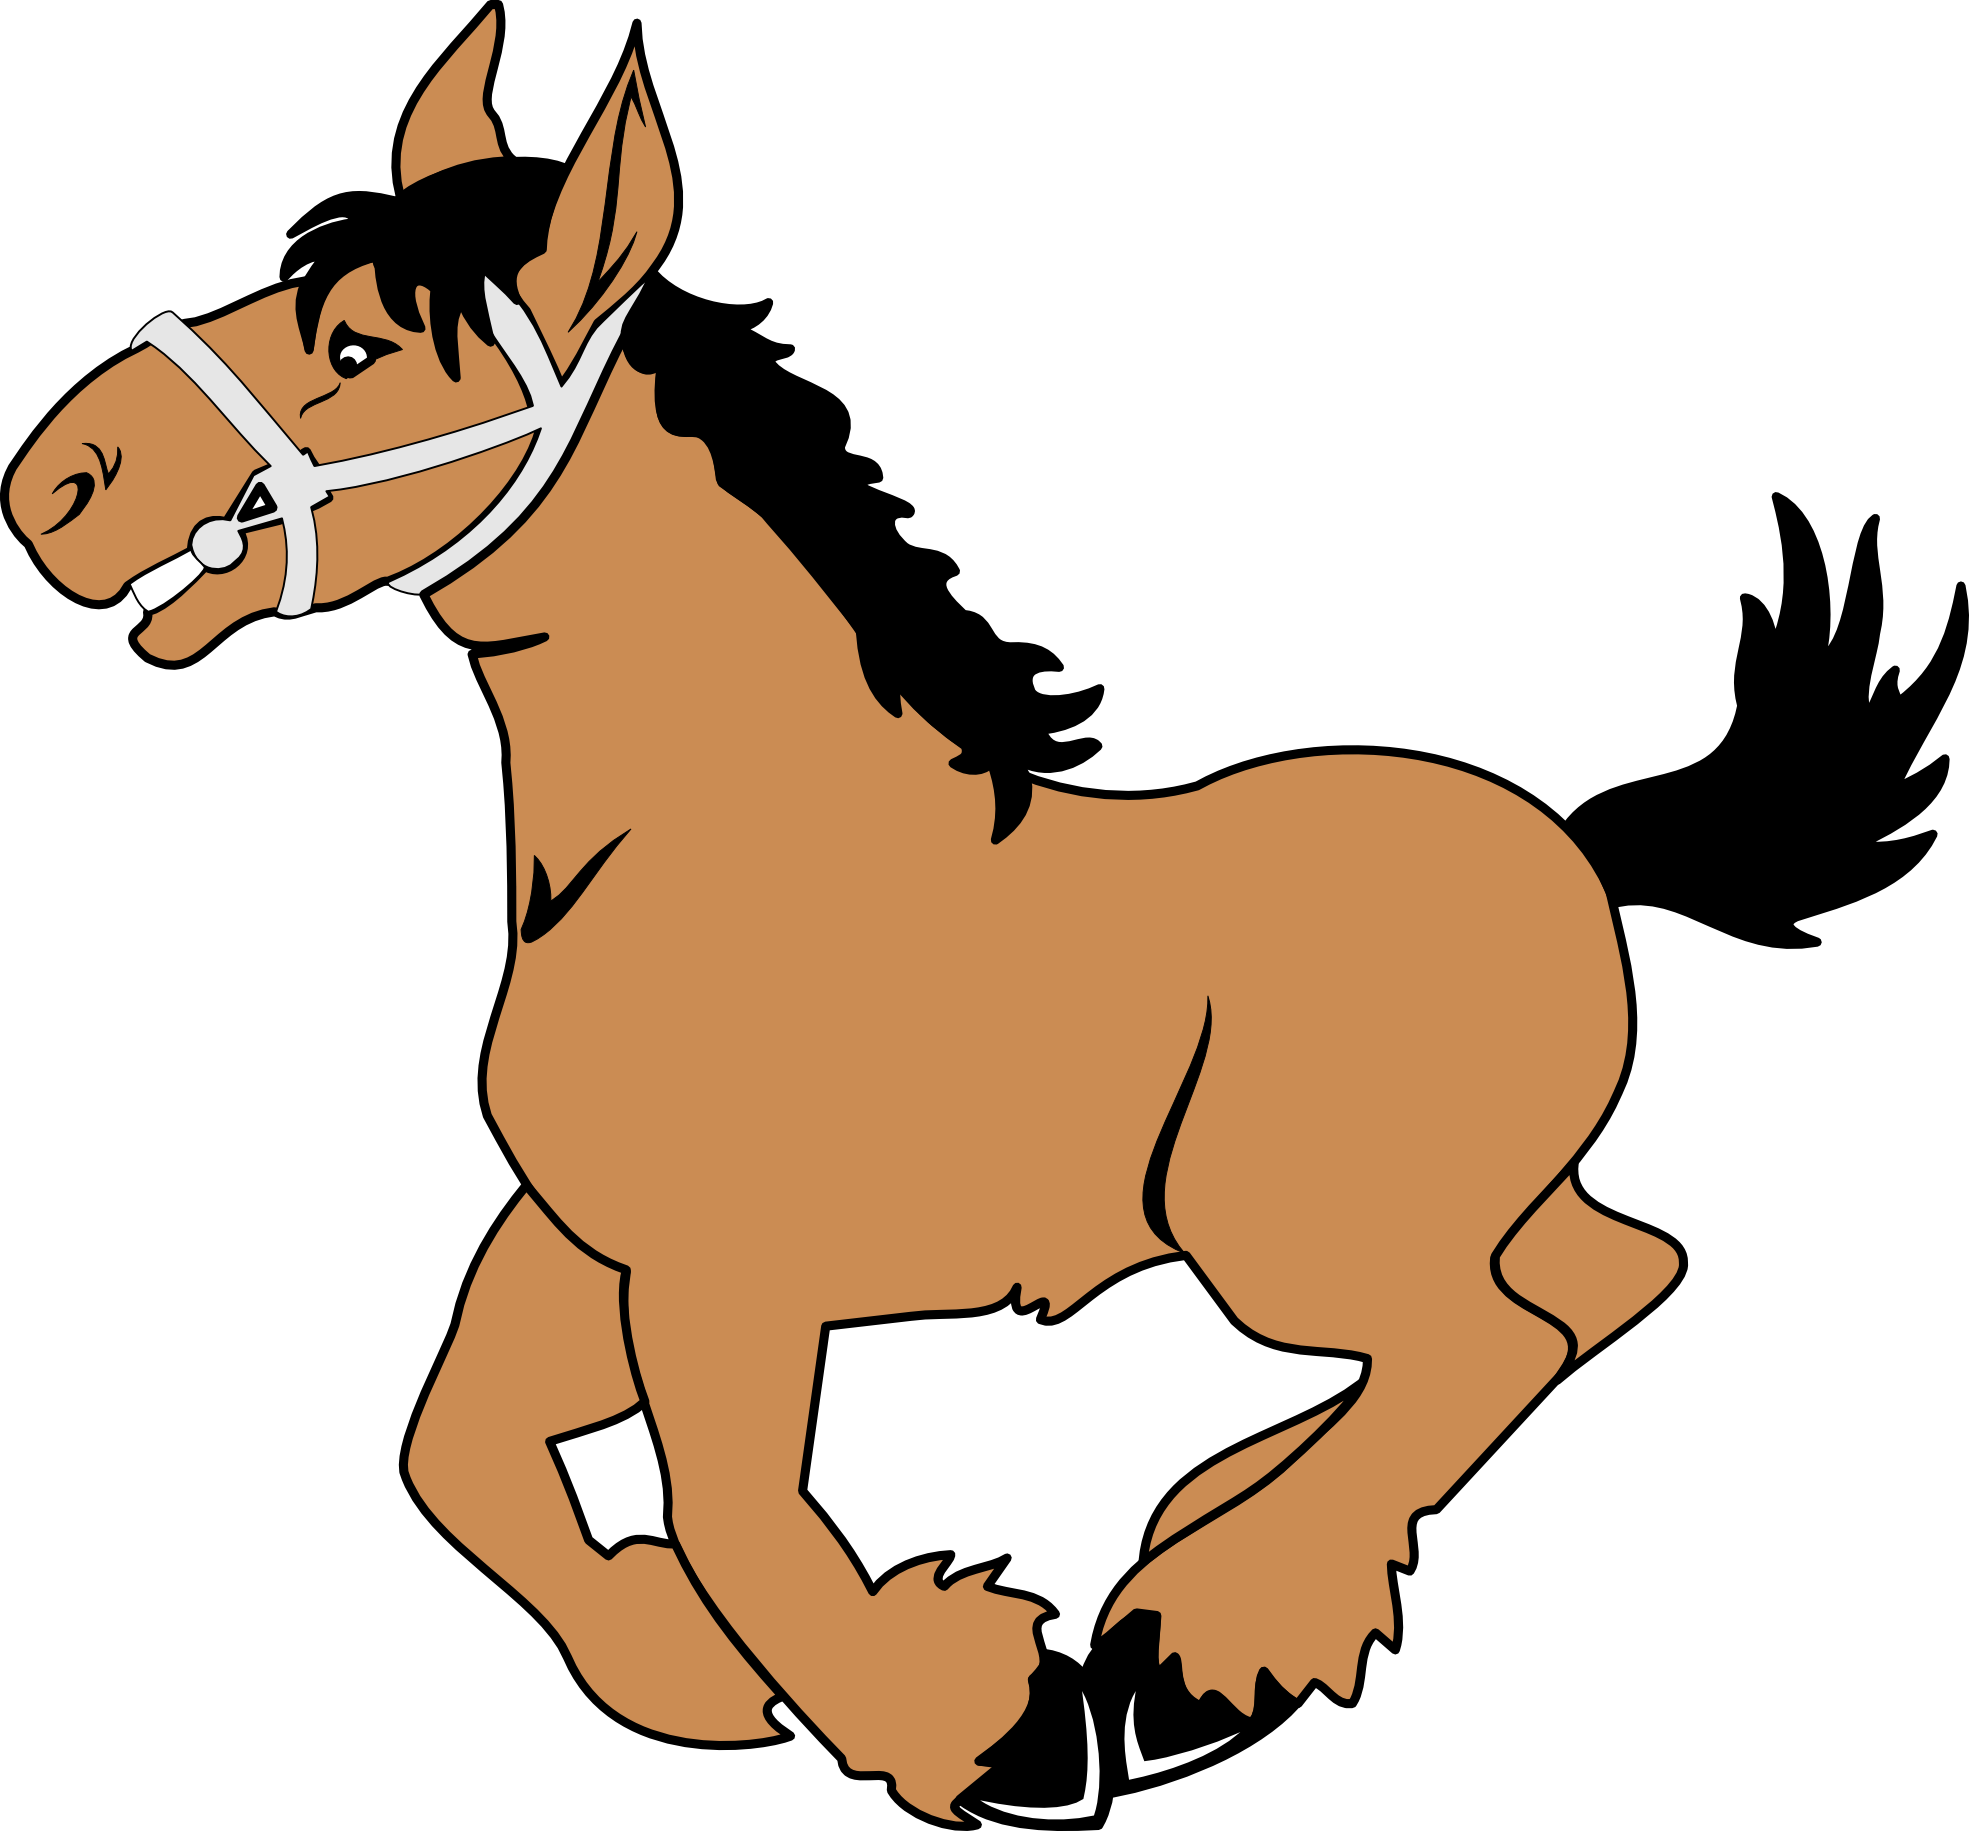 Horse clipart #3, Download drawings